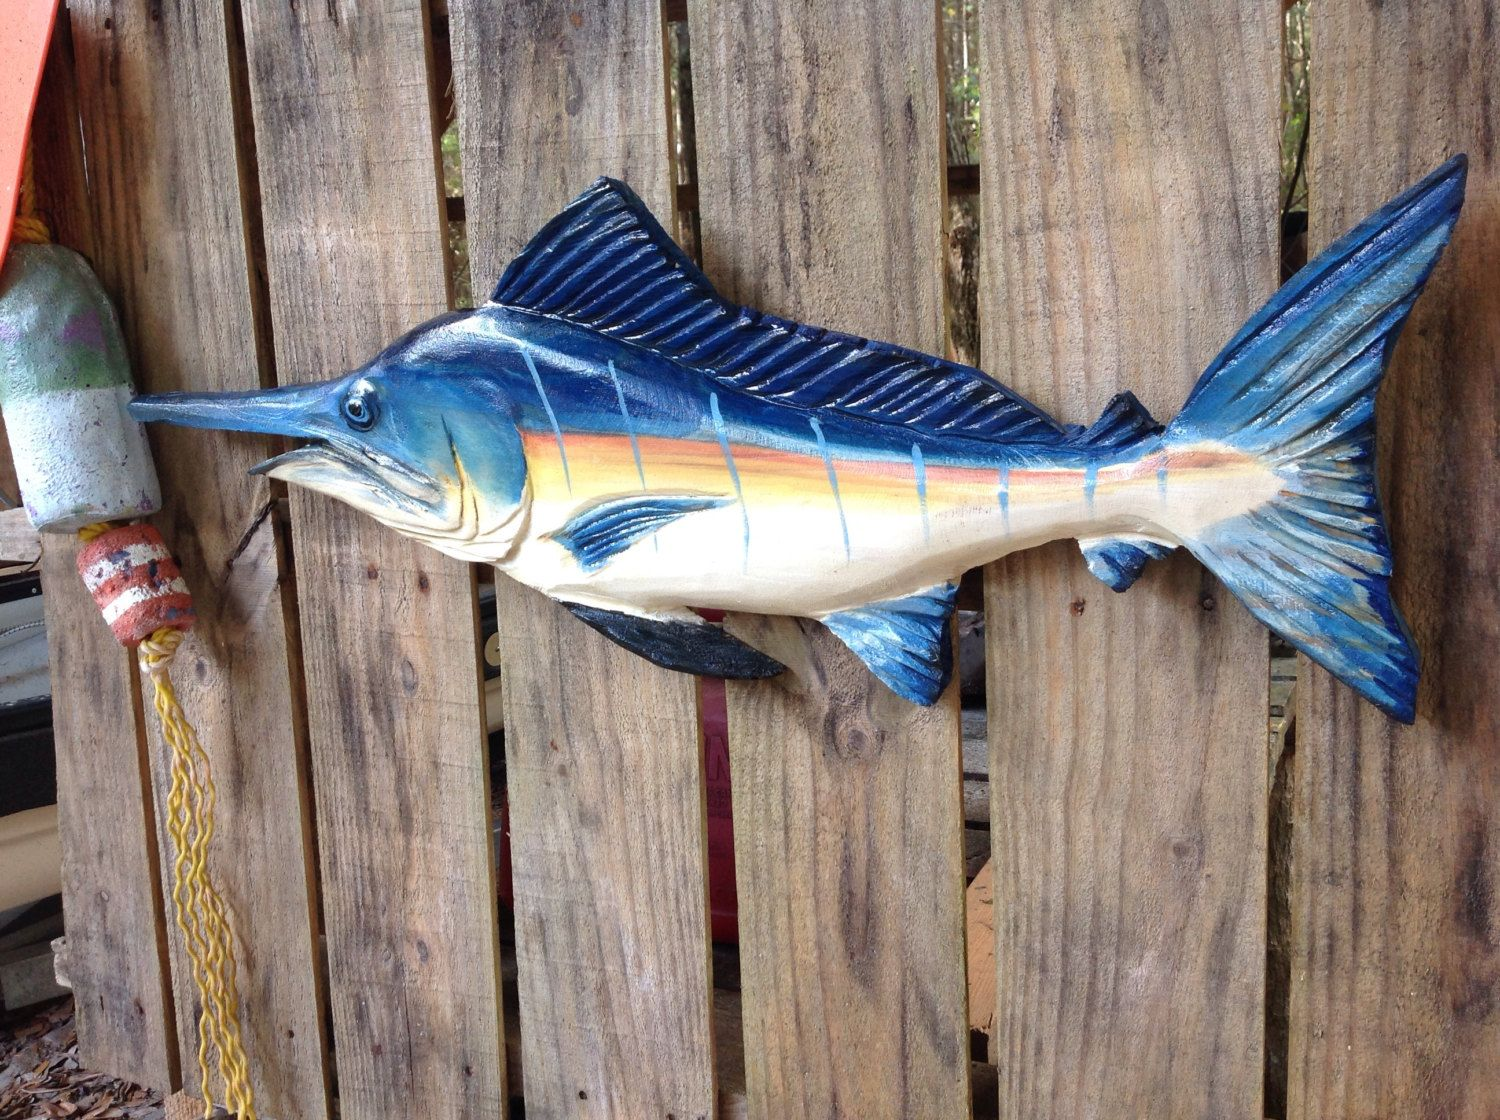 Blue marlin 30 chainsaw wood carving fish wall mount sculpture fishing decor sealed indoor outdoor angler art nautical home accent by oceanarts10 on etsy